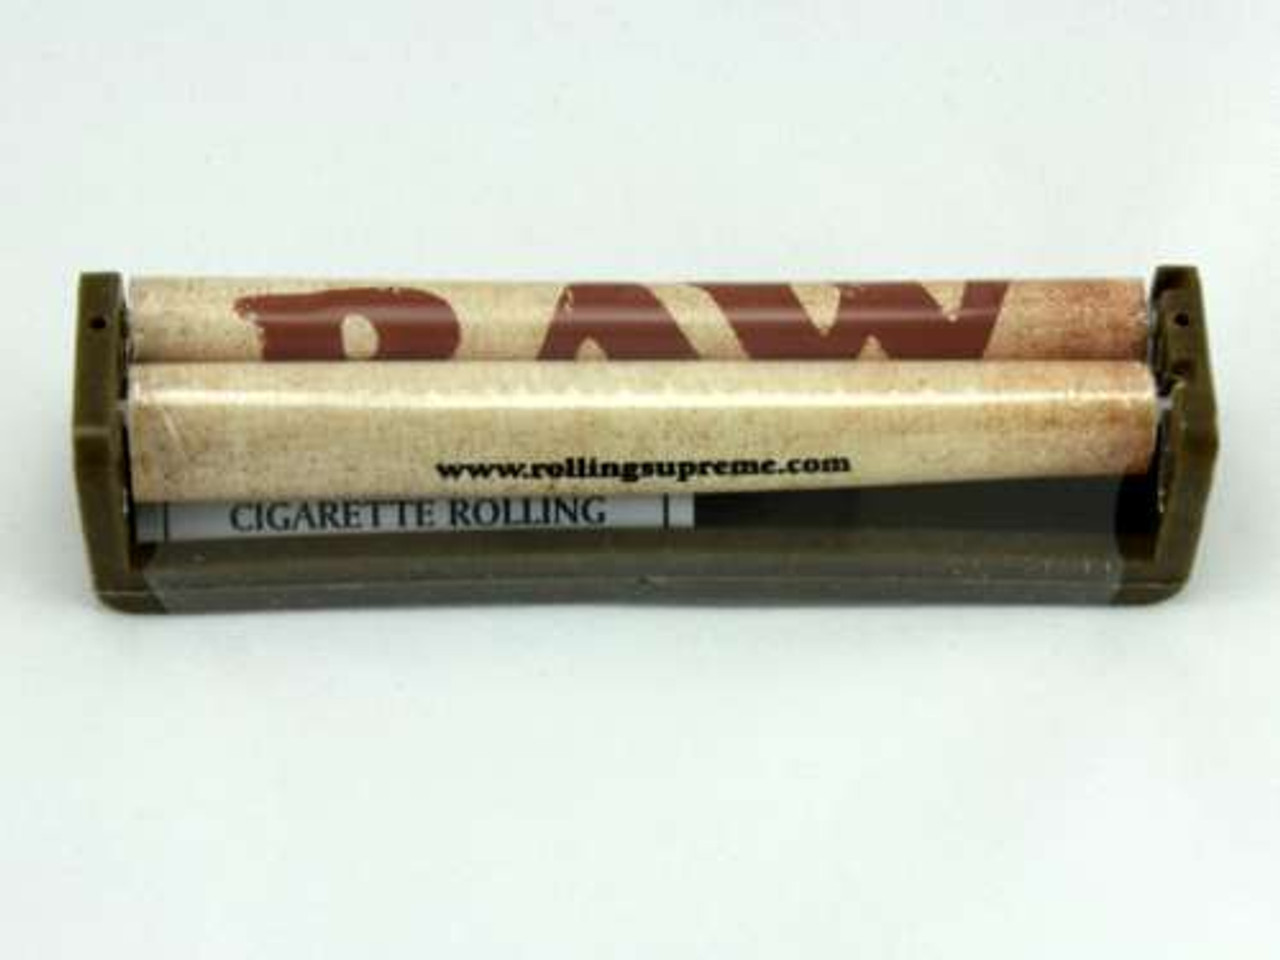 RAW 110mm Cigarette Roller